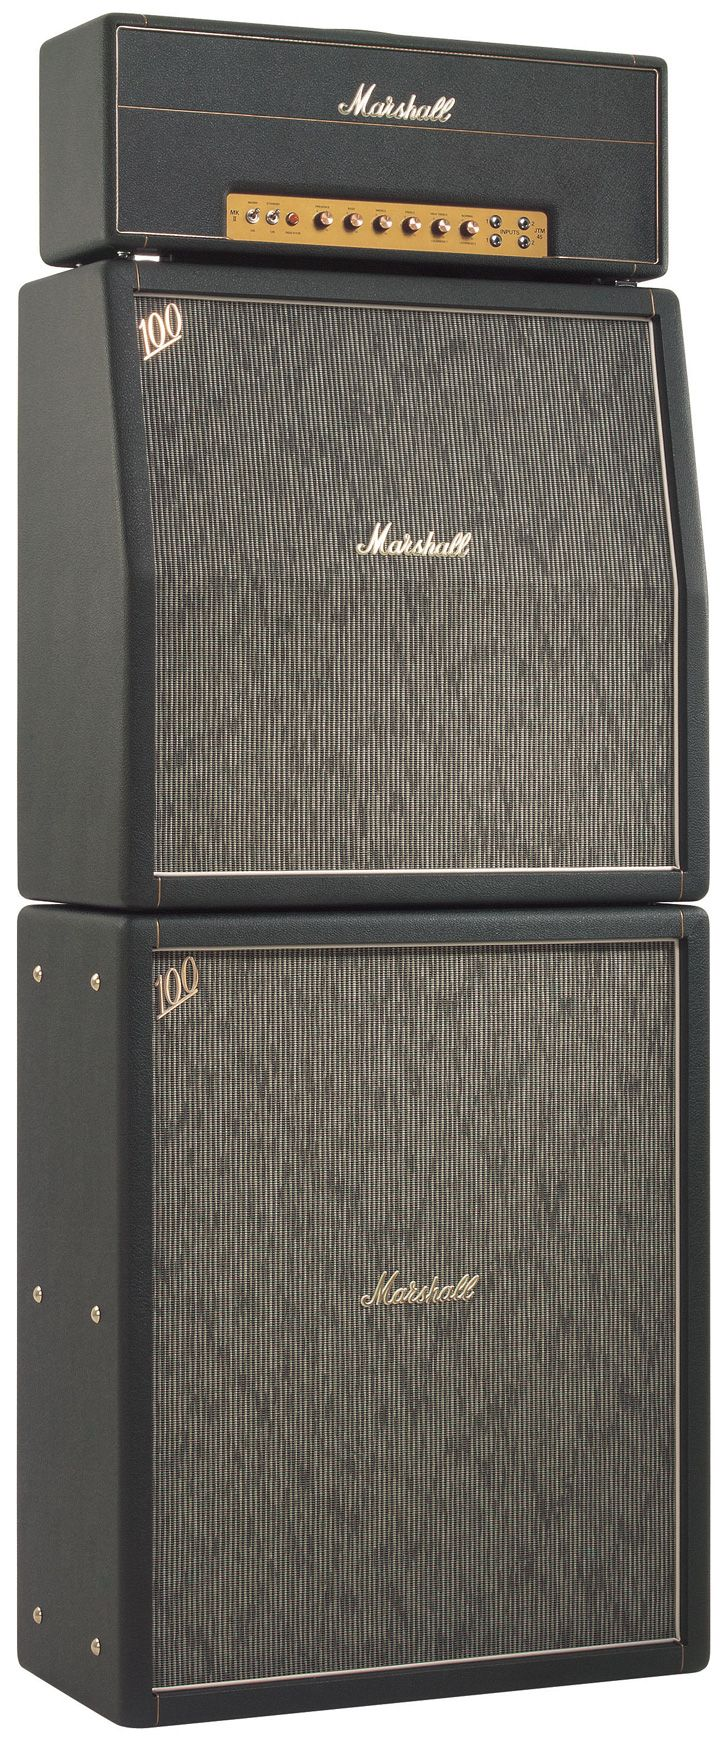 marshall amps | Os 50 Solos de Guitarra Mais Influentes do Rock – Parte IV | Vitrola ...